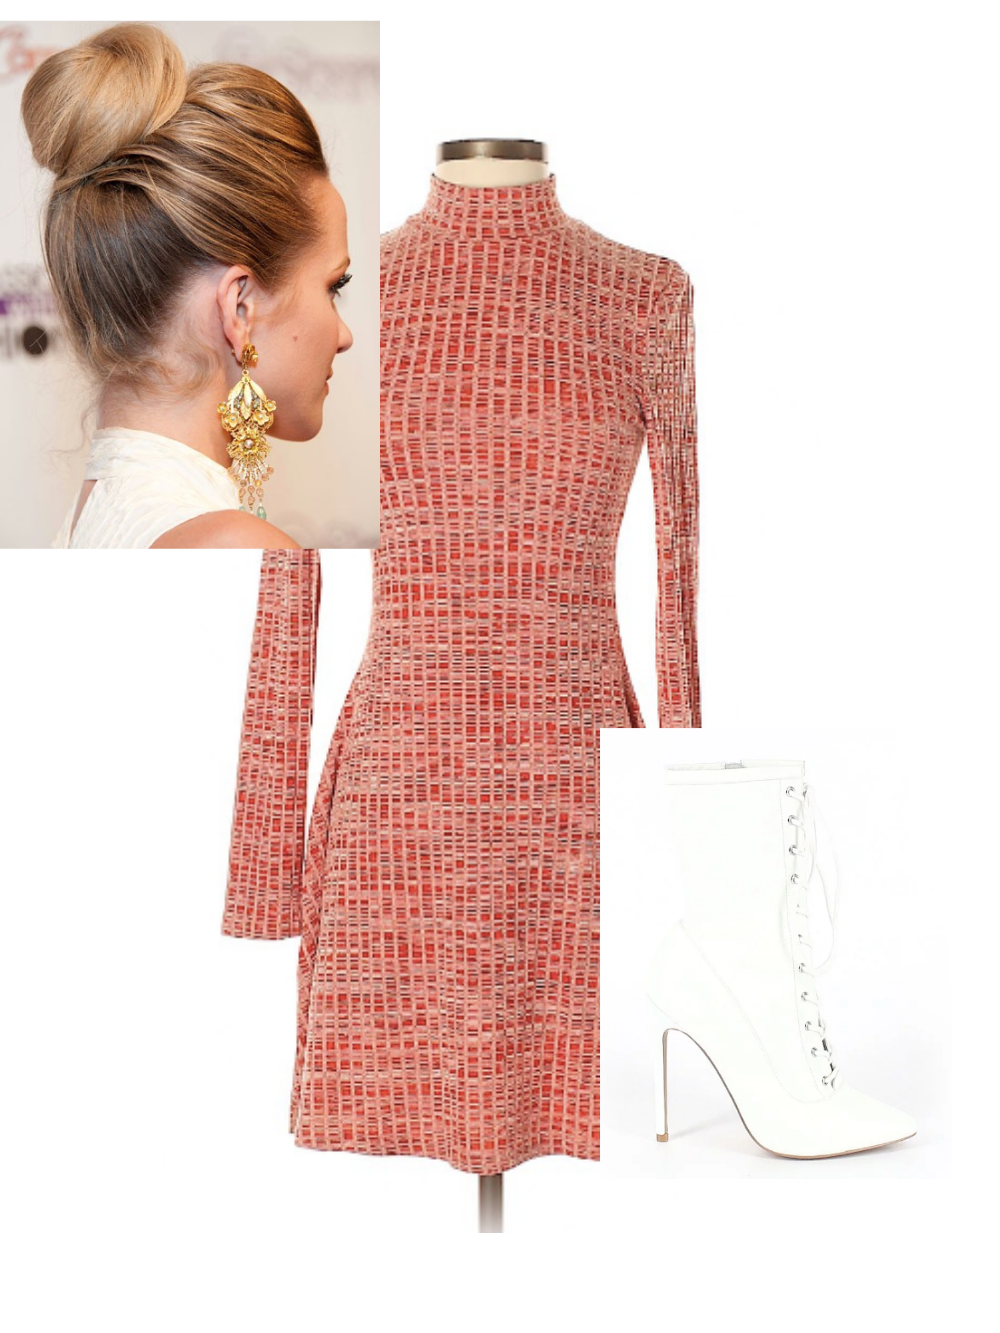 Red mini dress, white go-go boots, loose bun for fourth of july outfit 1